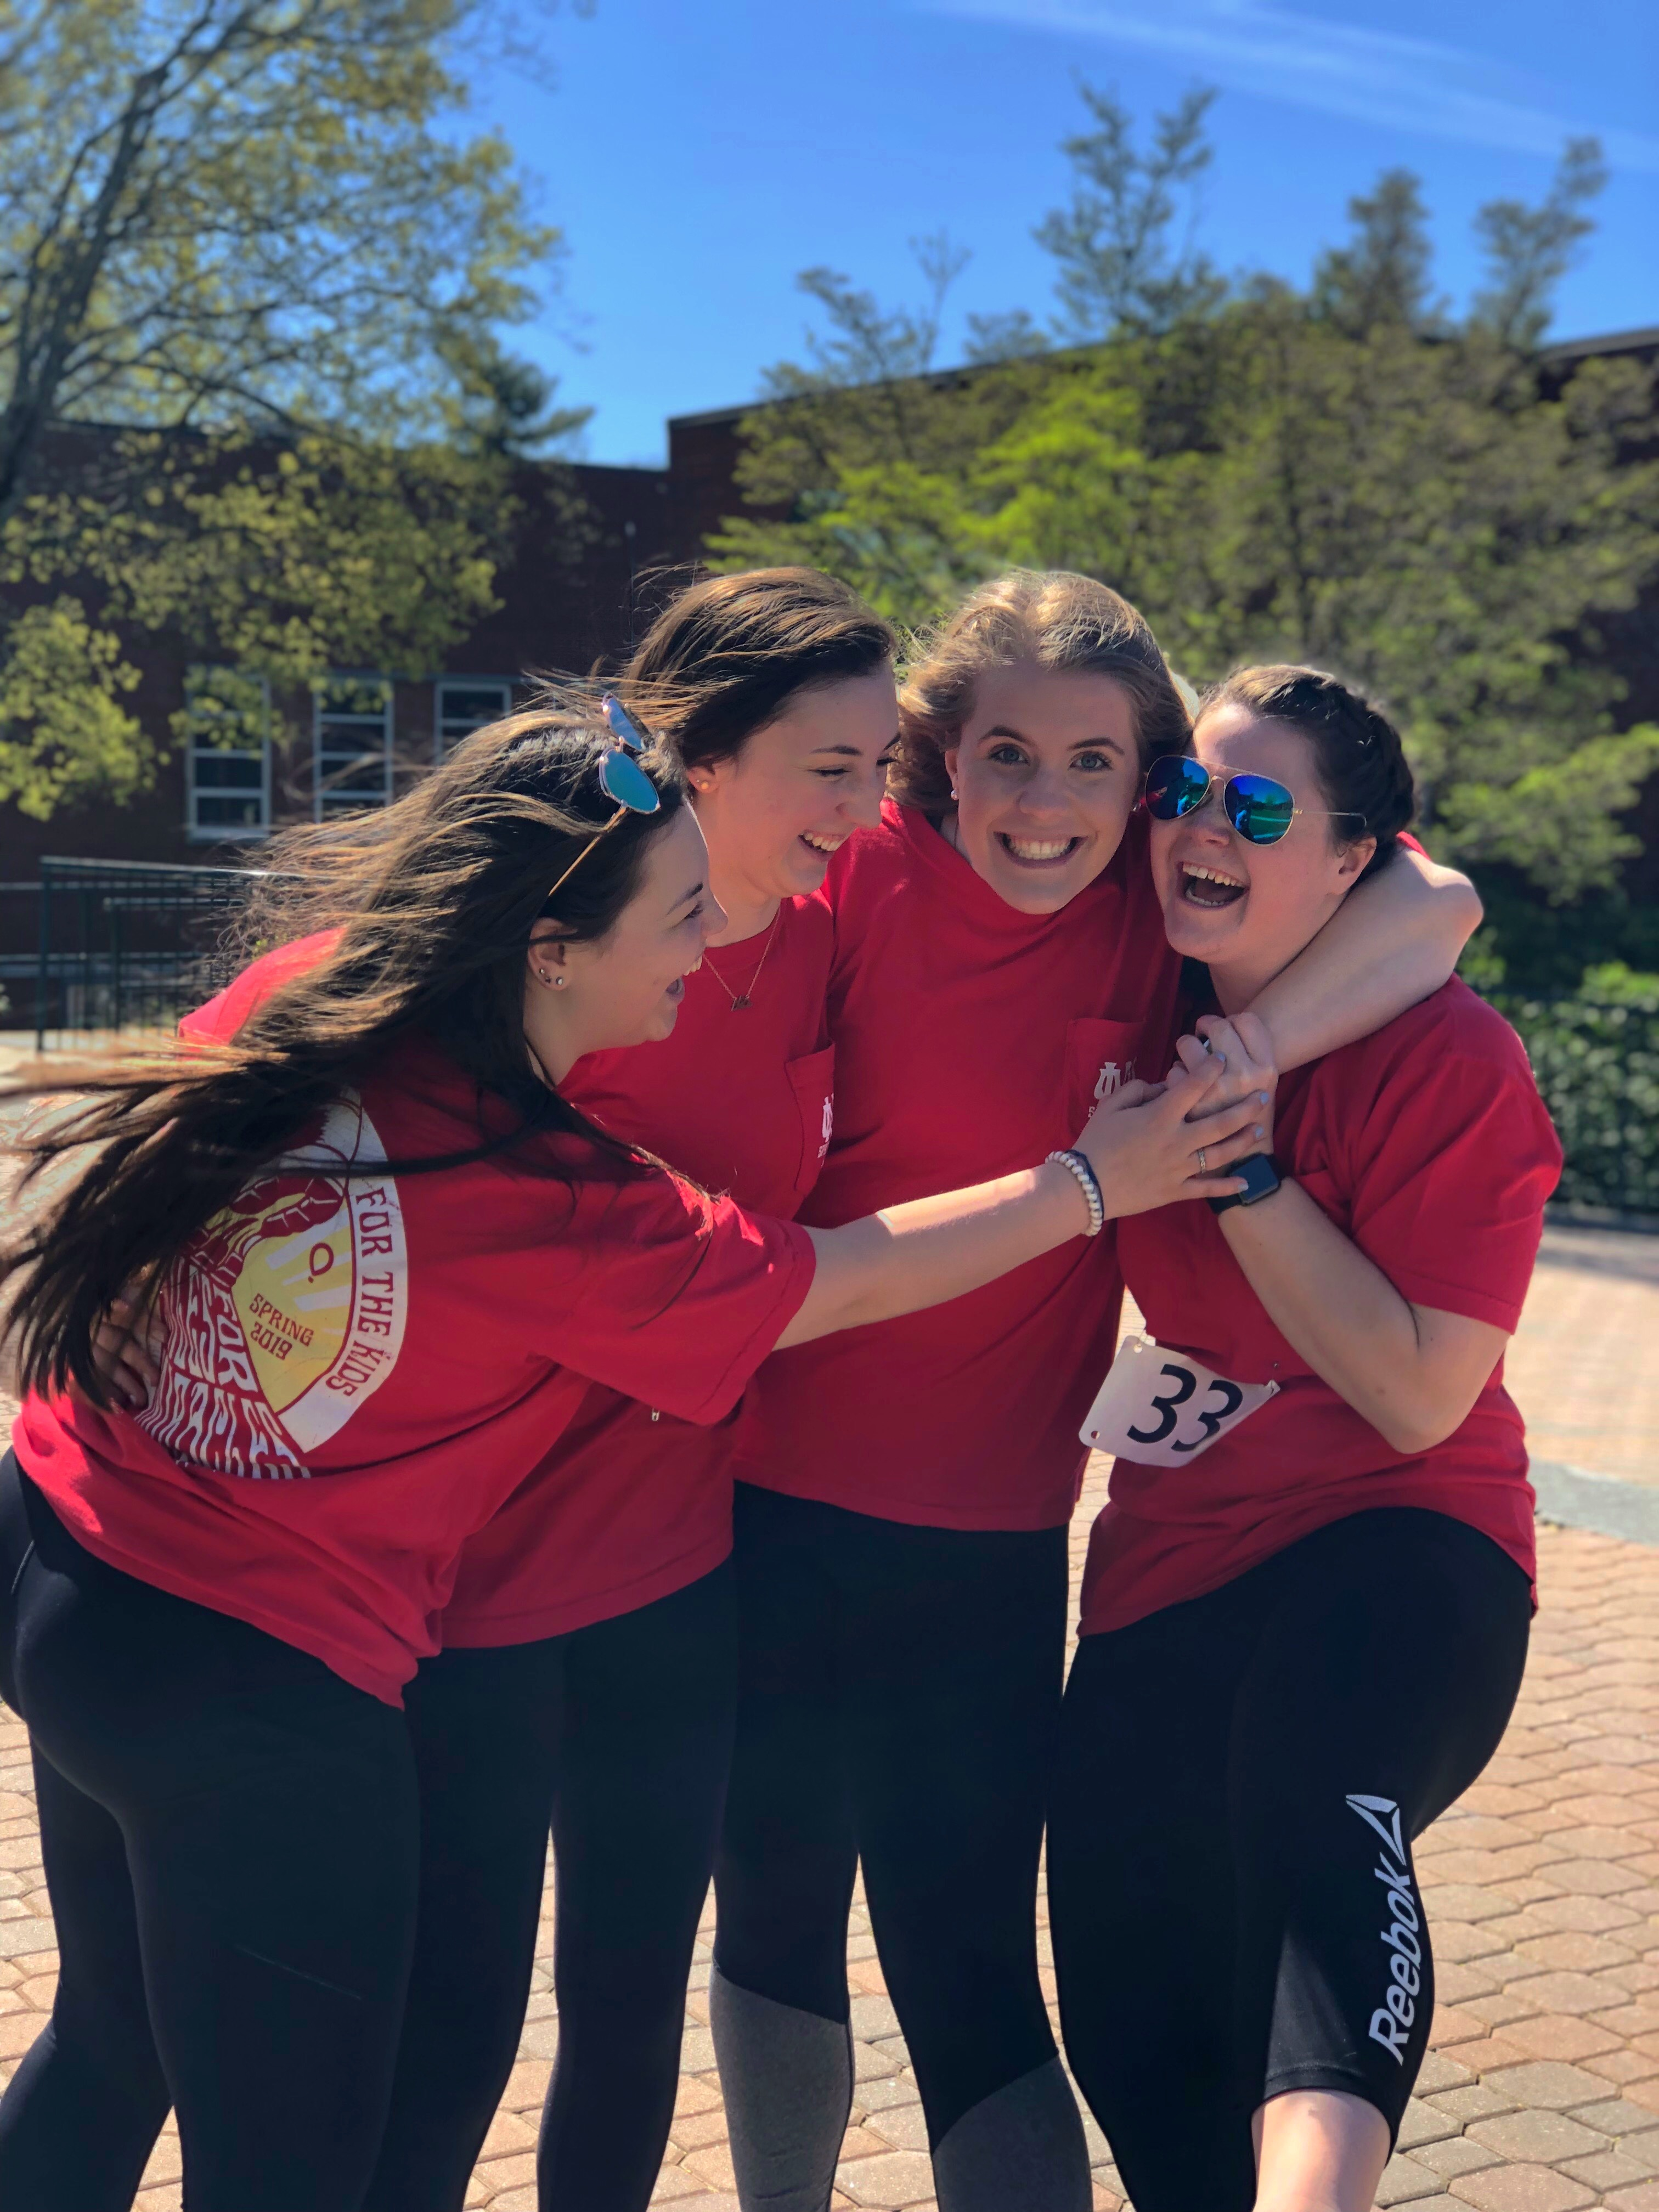 Miles for Miracles 2019